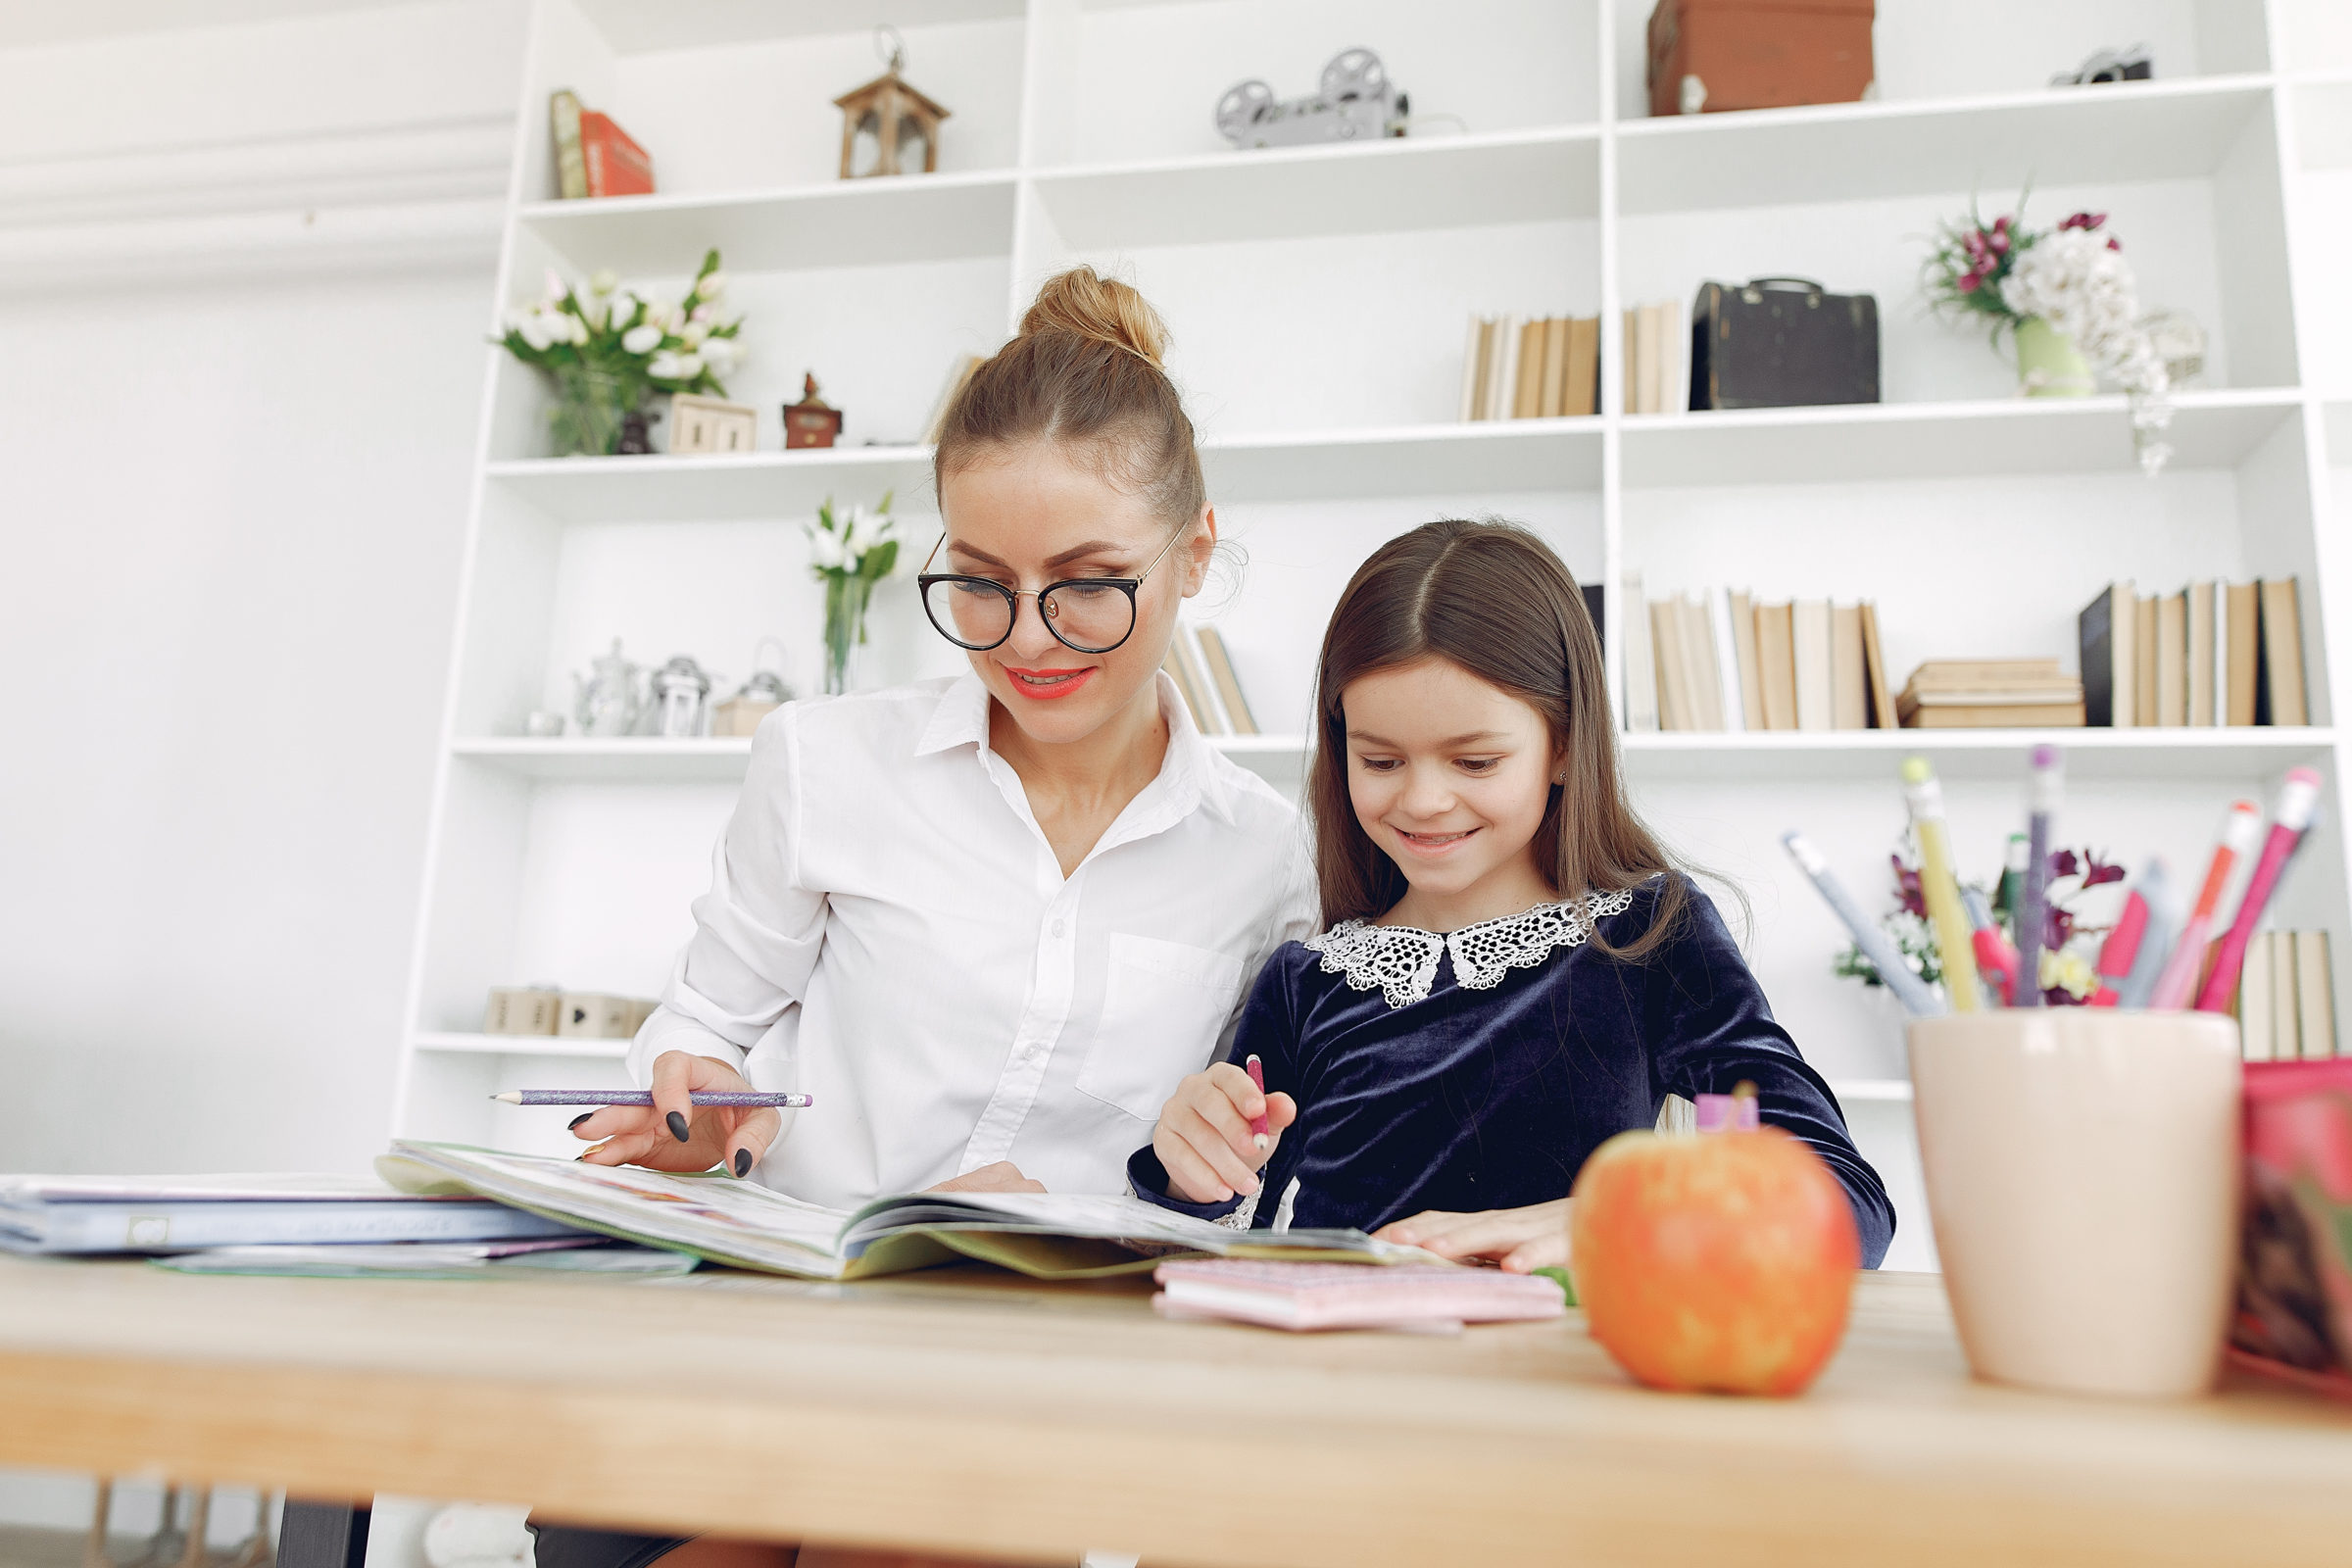 tutor with litthe girl studying at home RYZ2869